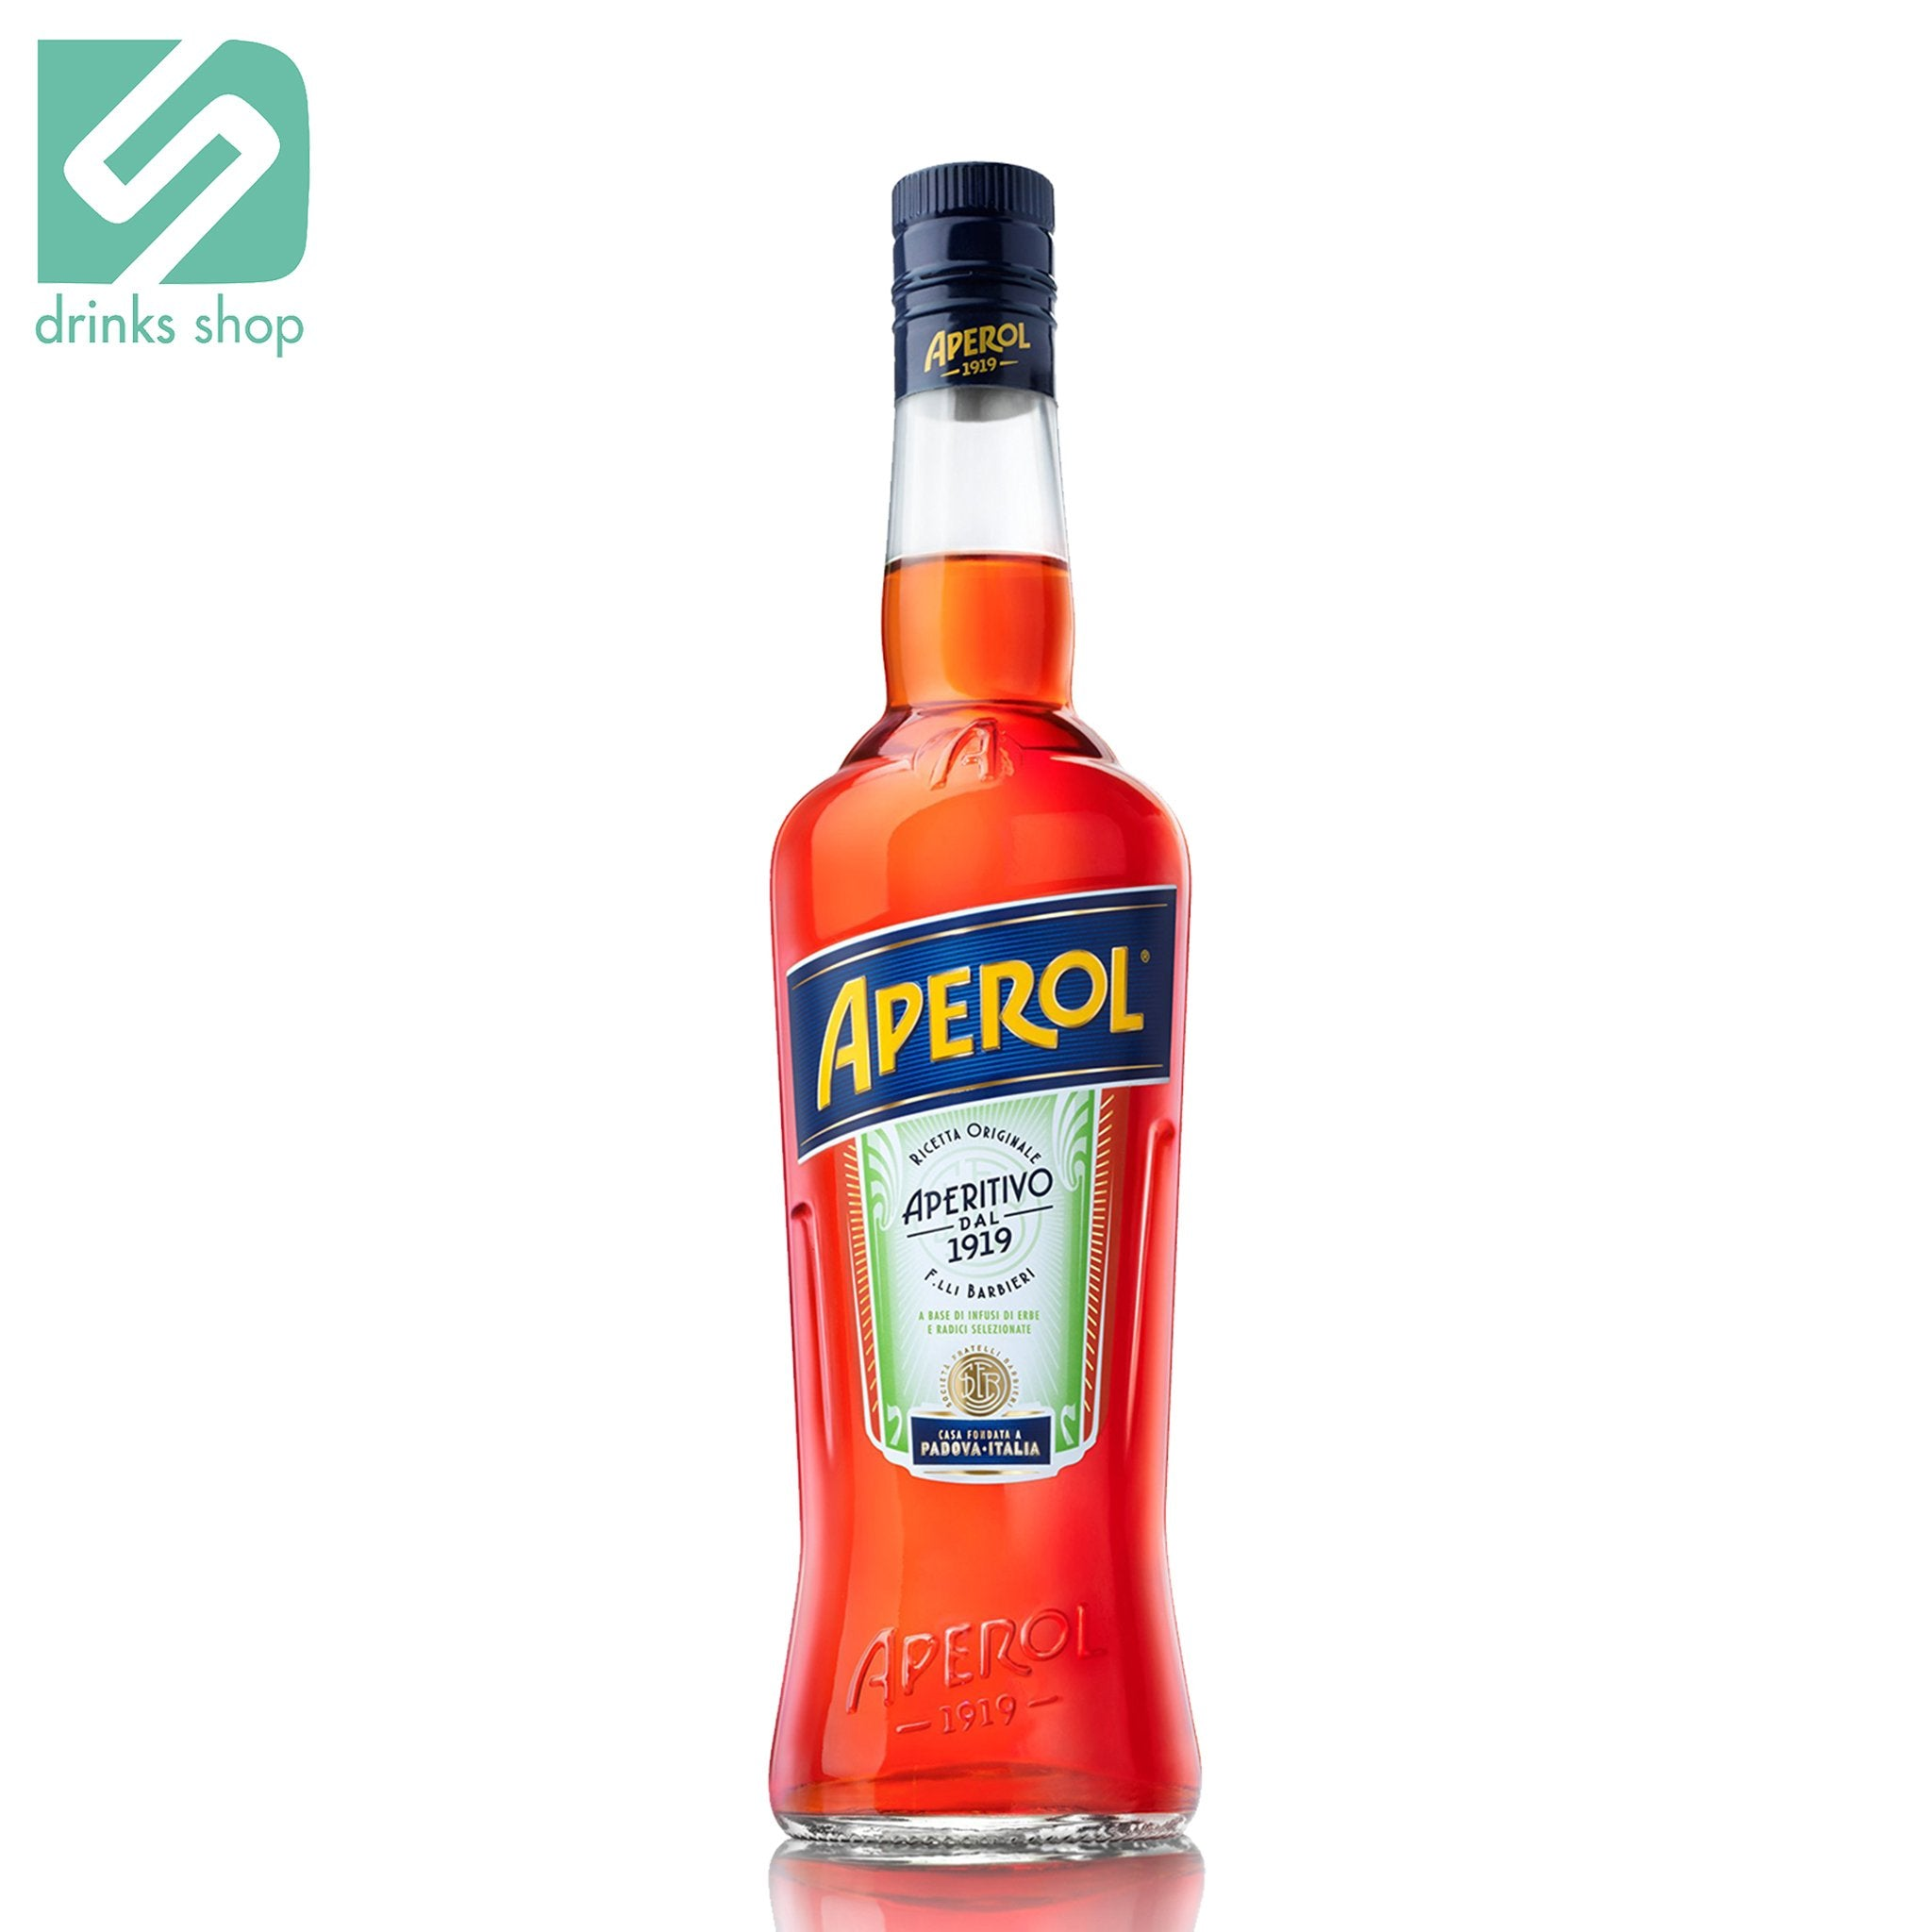 Aperol Aperitivo 70cl, Alcoholic Beverages - Image 2